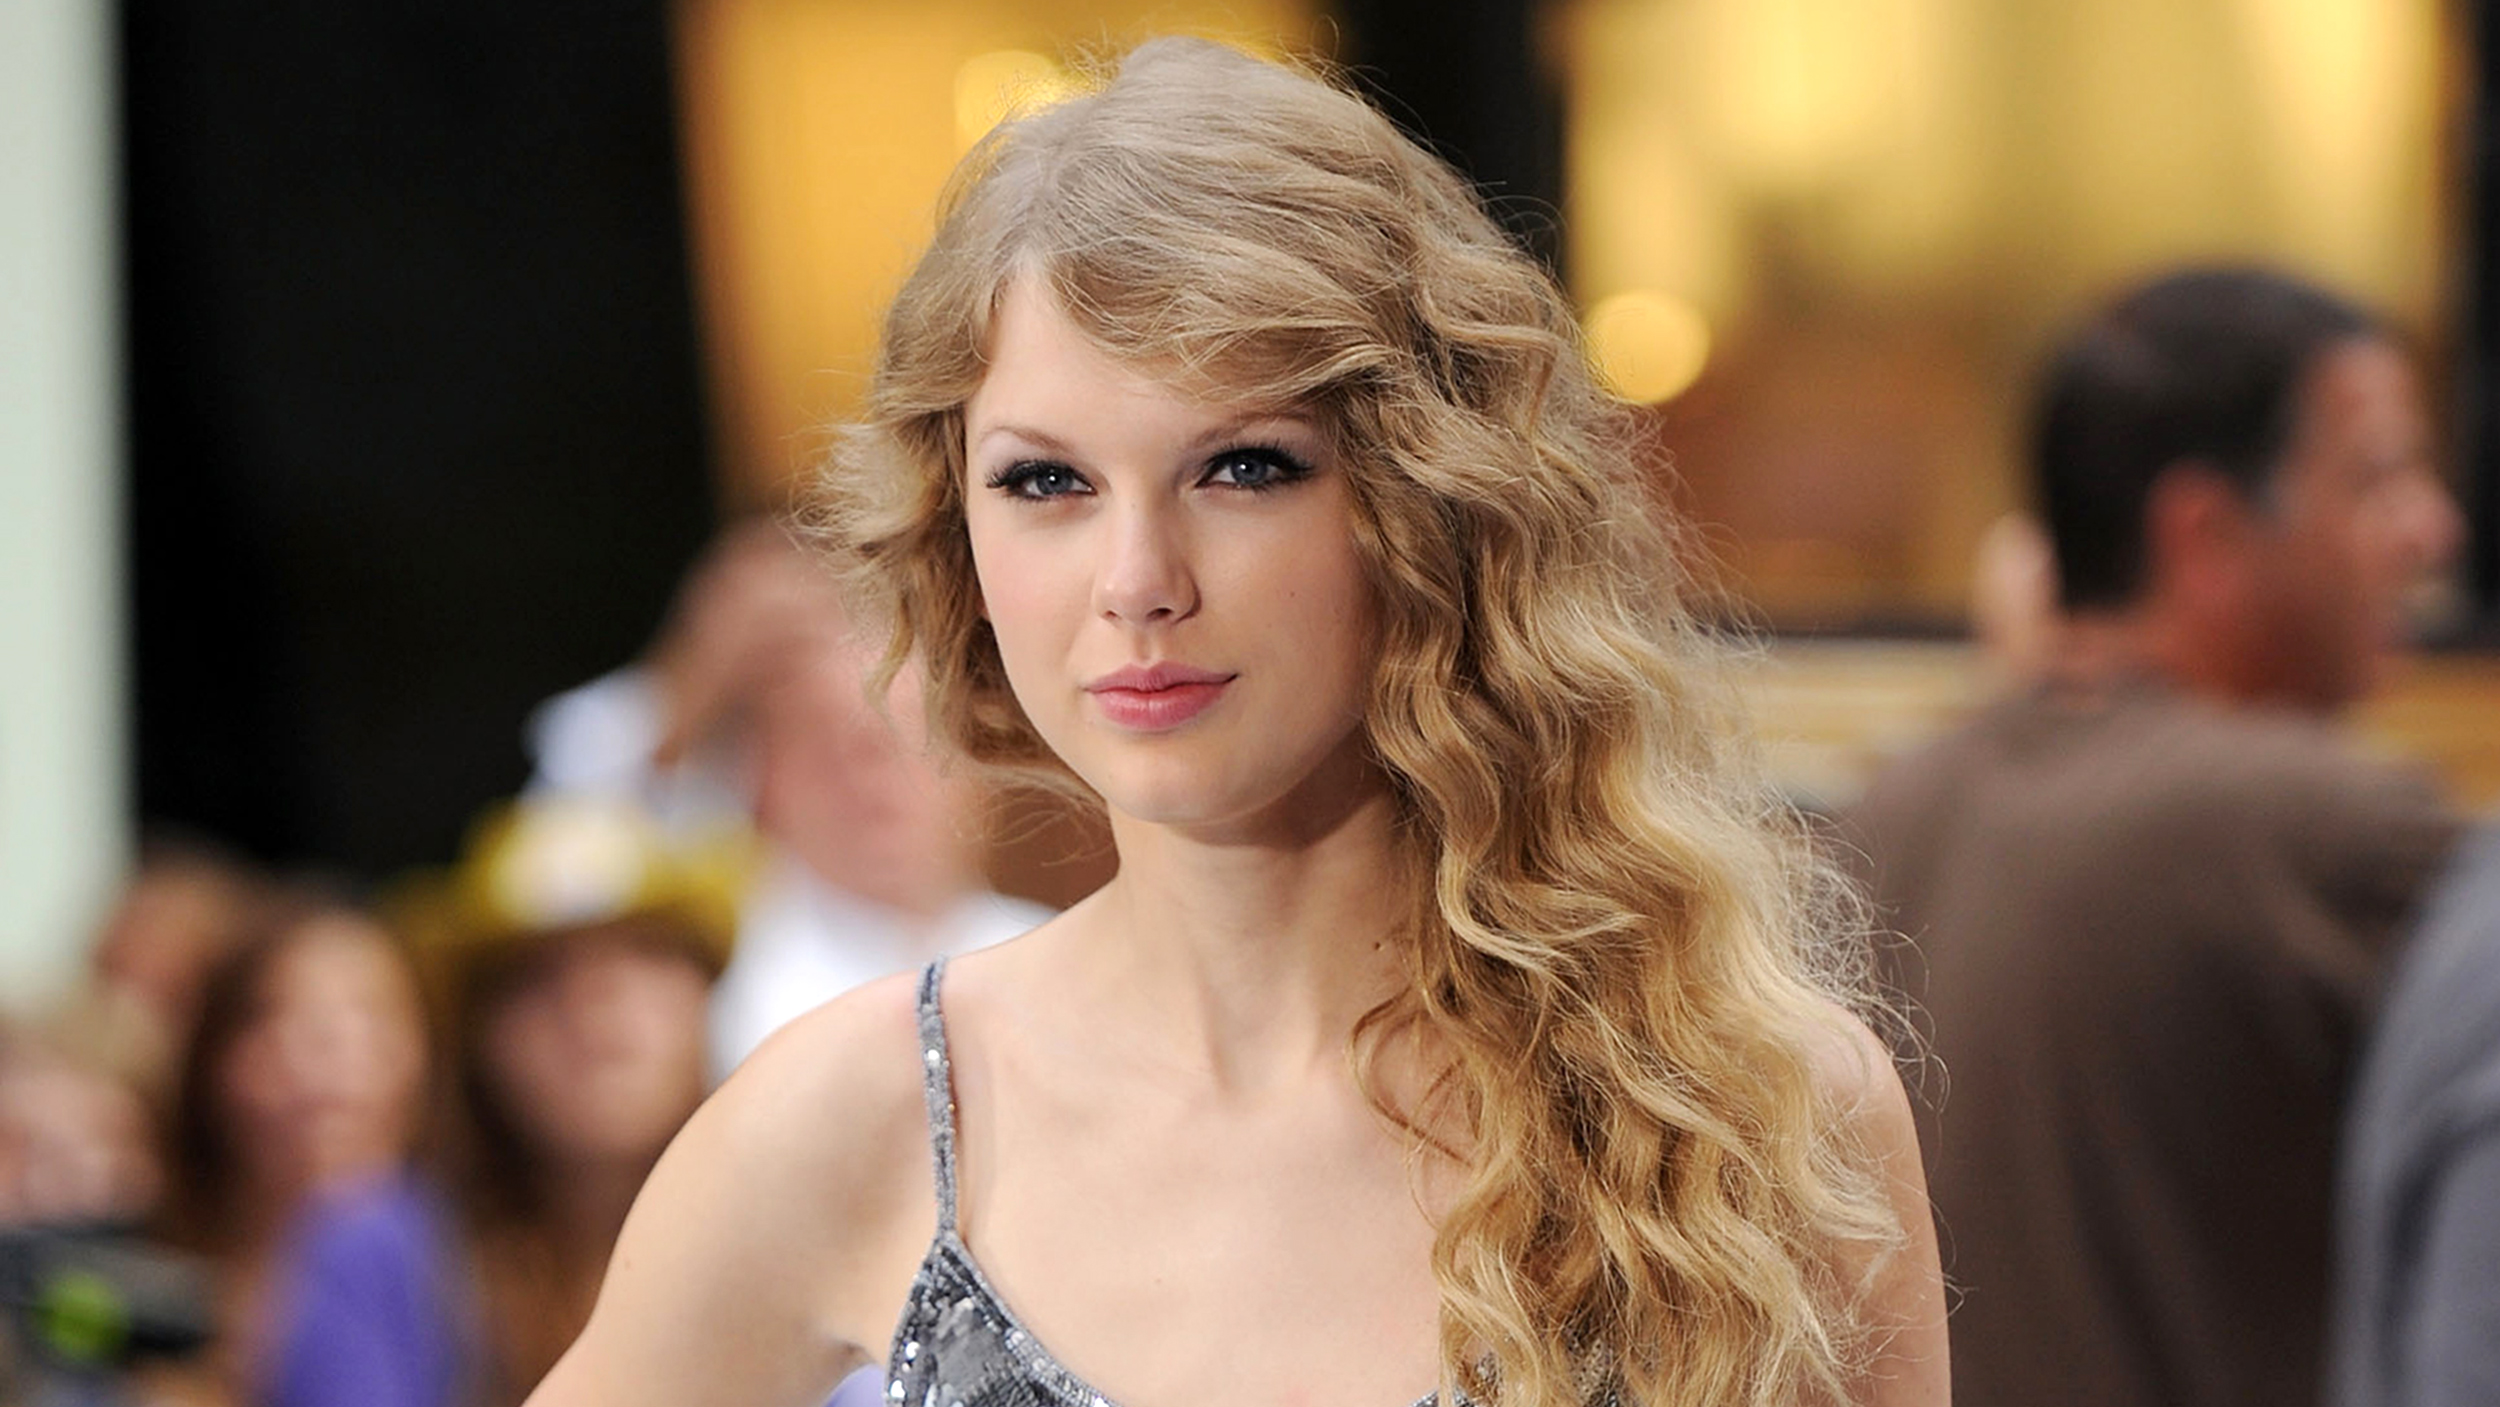 taylor swifts hair returns to its curly country music roots